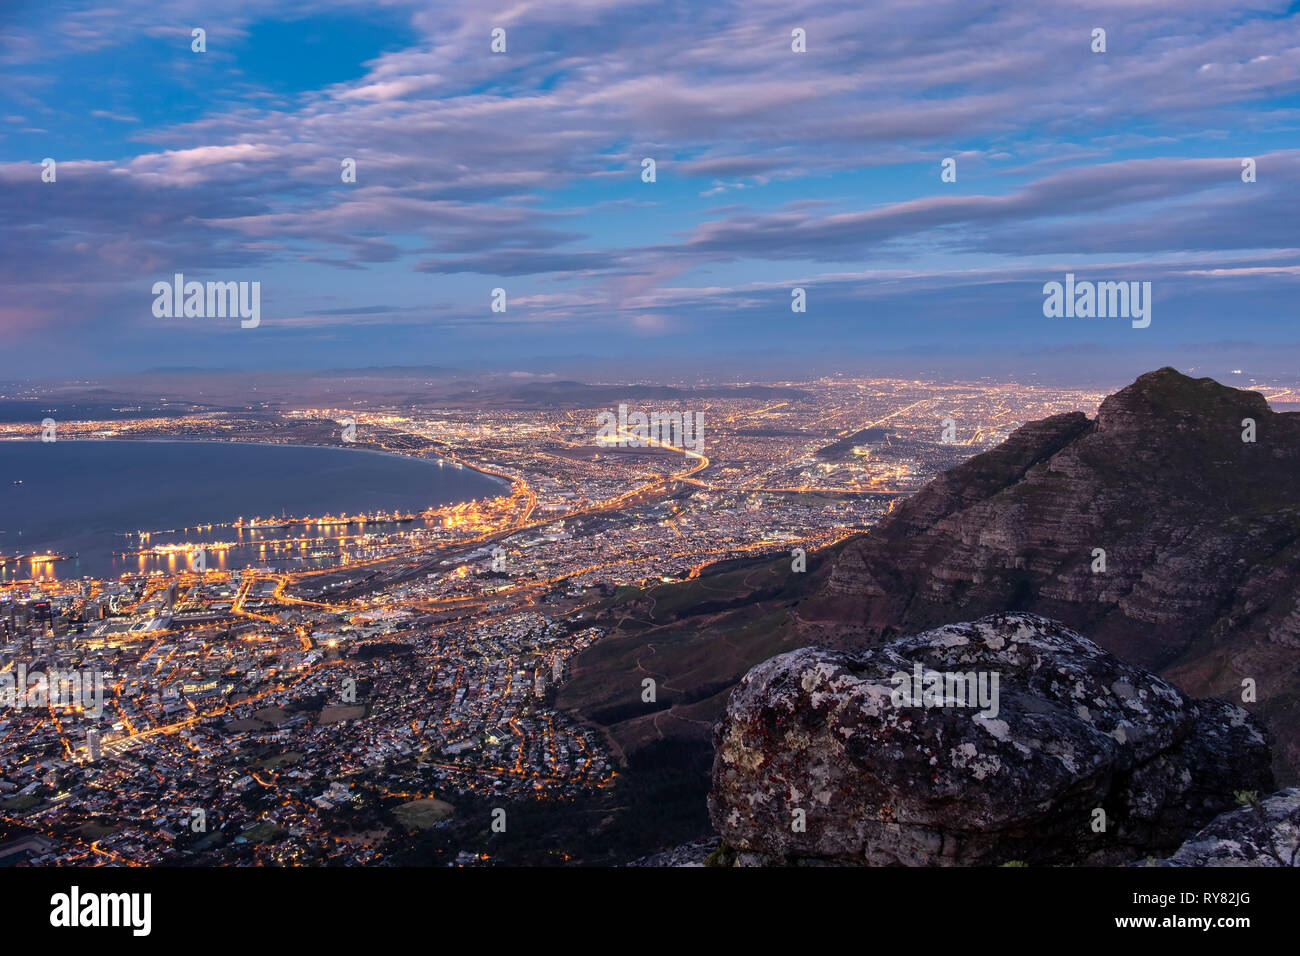 The Devils Peak and City of Cape Town from Table Mountain at sunset, Cape Town, Western Cape, South Africa - Stock Image